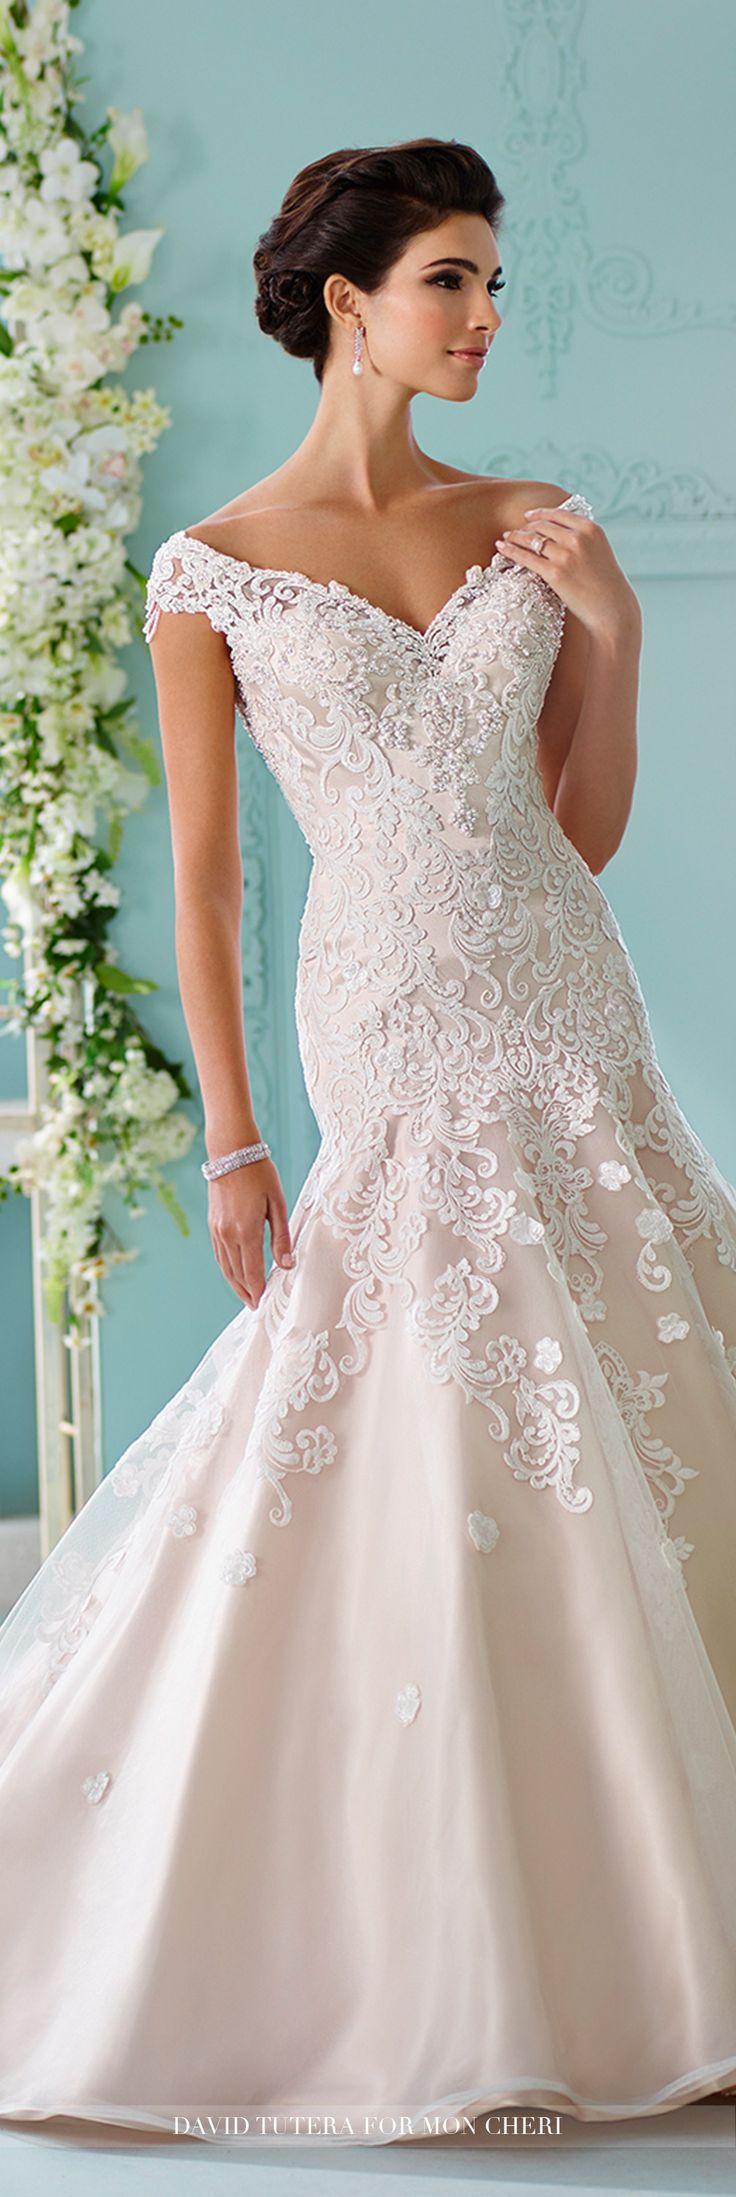 Lace Wedding Dress With Cap Sleeves Style D1919 : Ideas about cap sleeve wedding on sleeved dresses